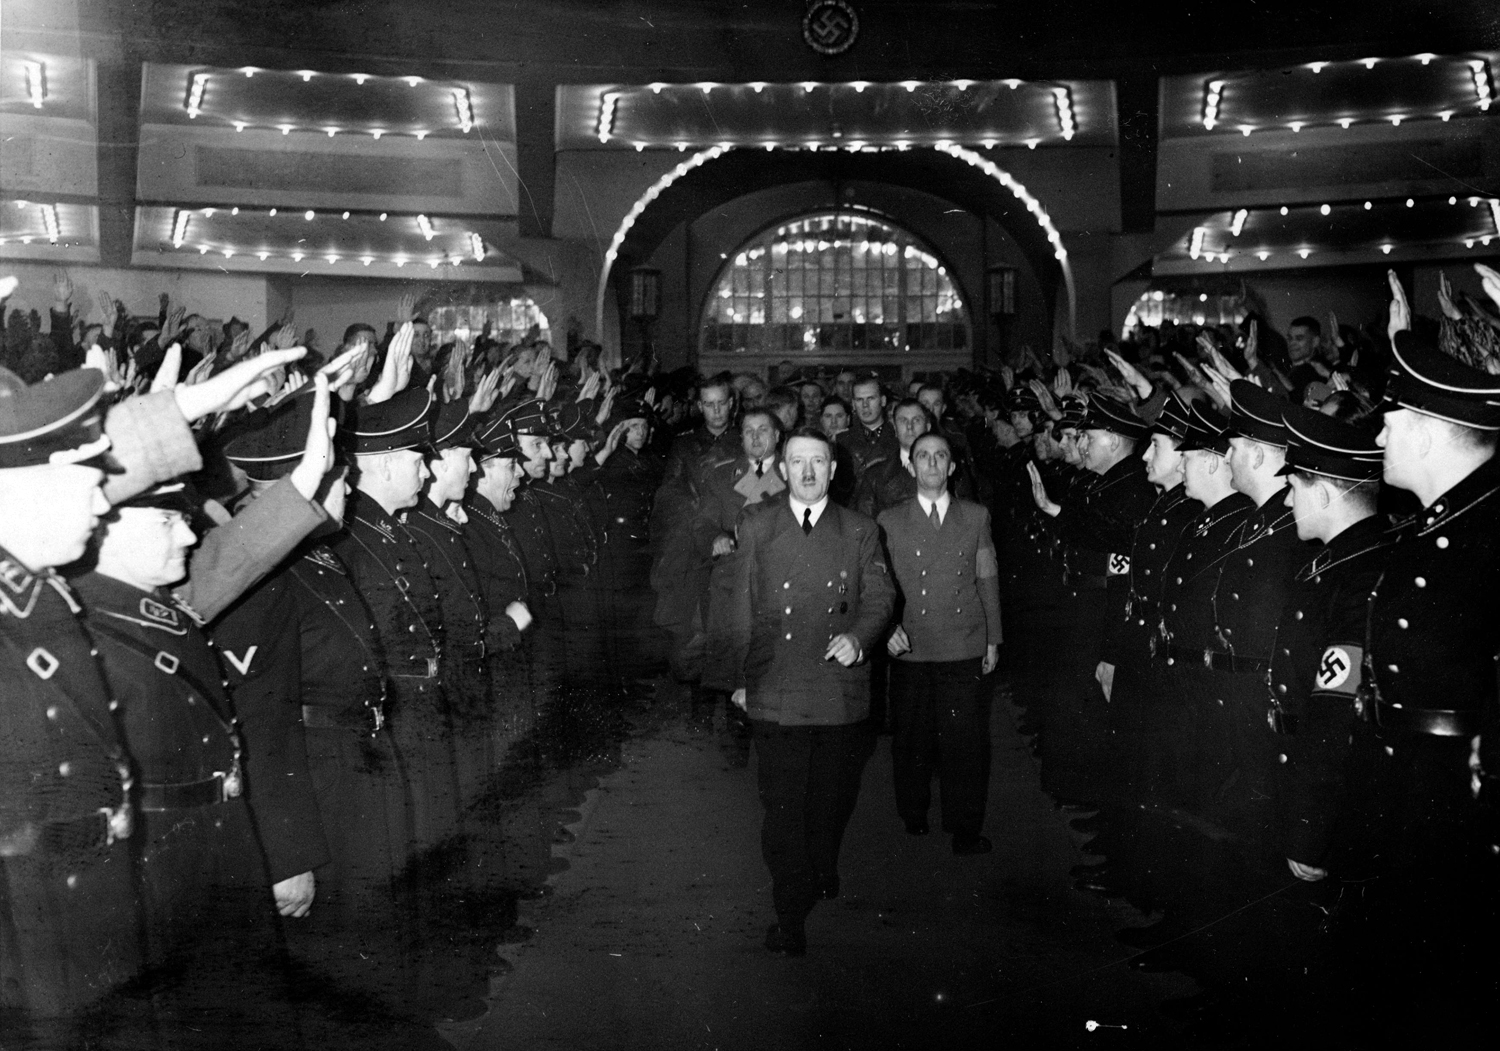 Adolf Hitler and Joseph Goebbels arrive at Berlin's Sportpalast for the 30th January celebration